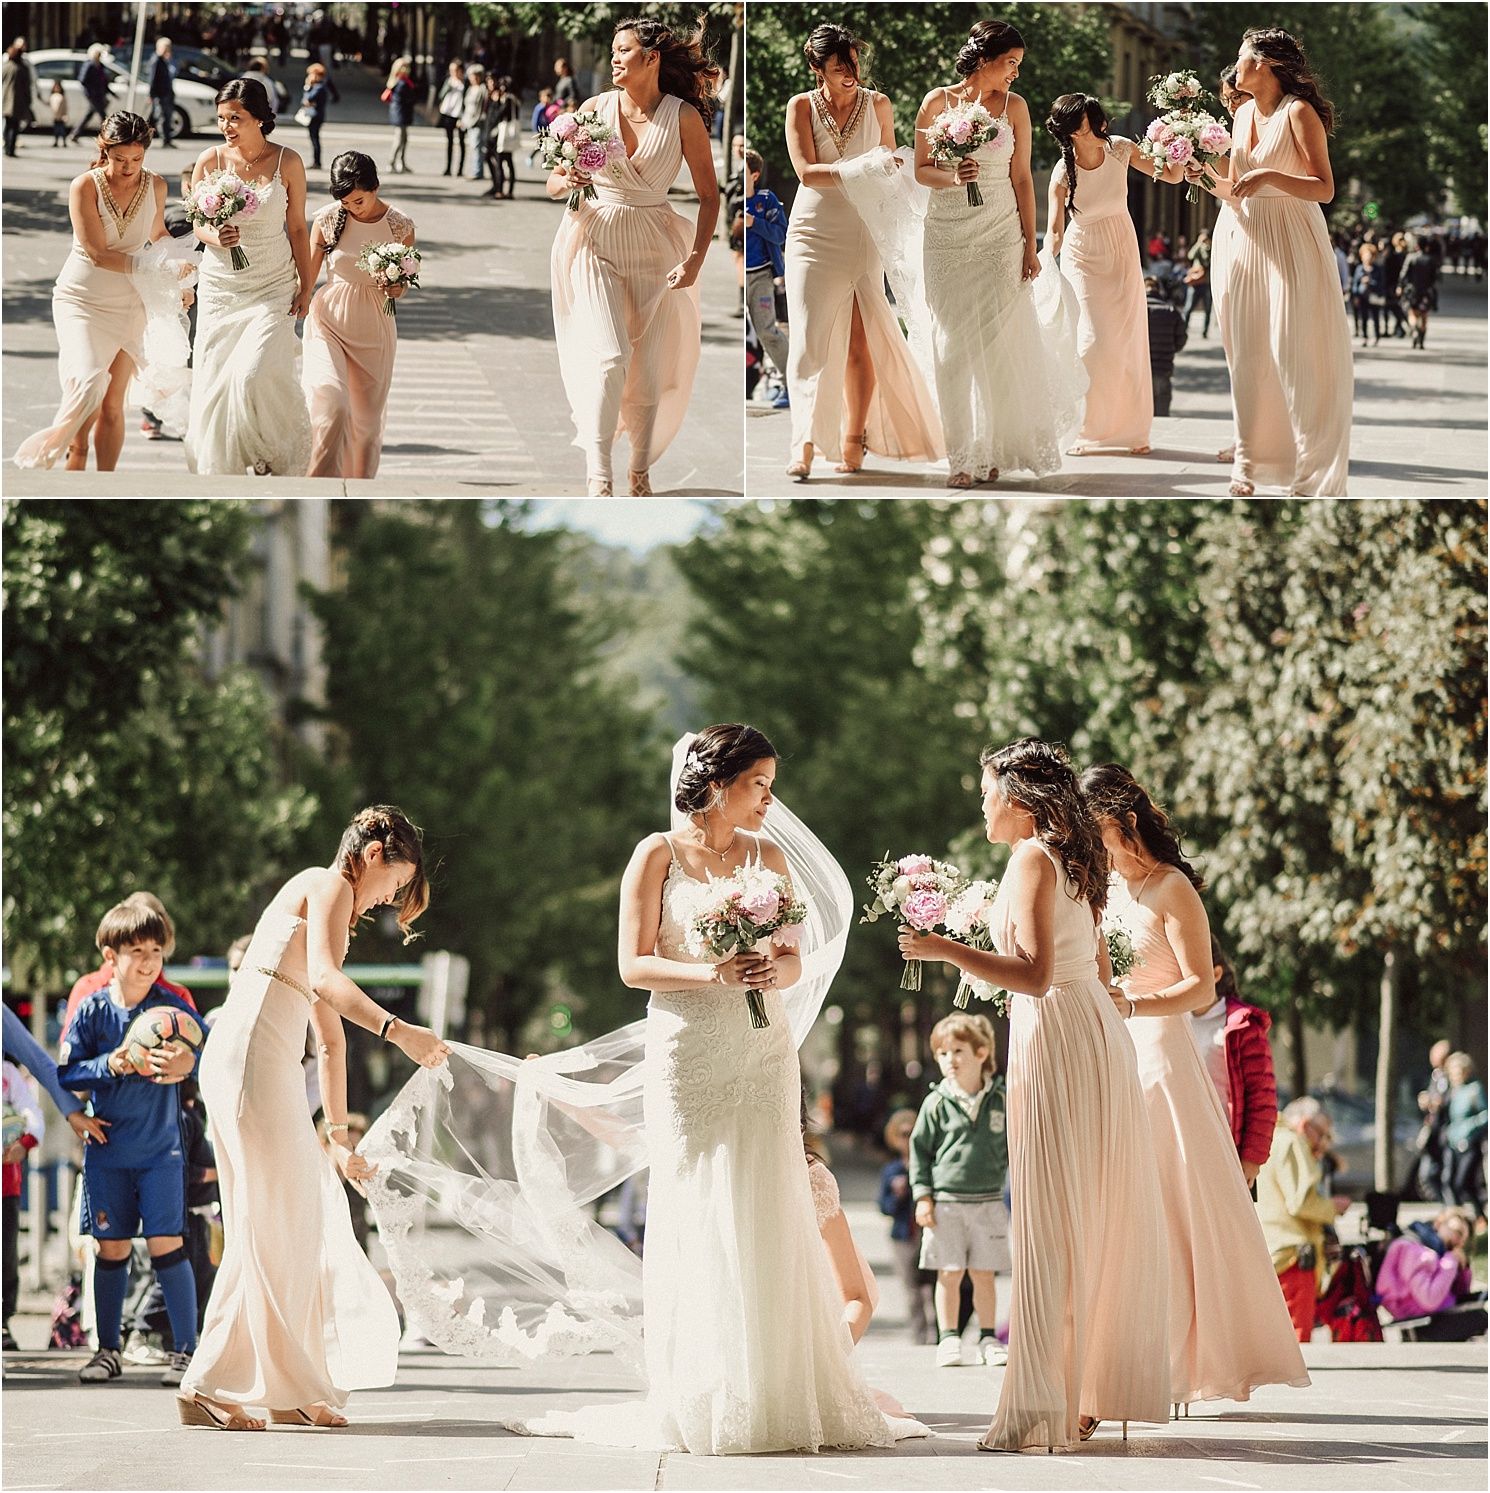 Destination wedding photographer San Sebastian - Destiantion wedding Donostia San Sebastián - Best photographer Basque country_-26.jpg